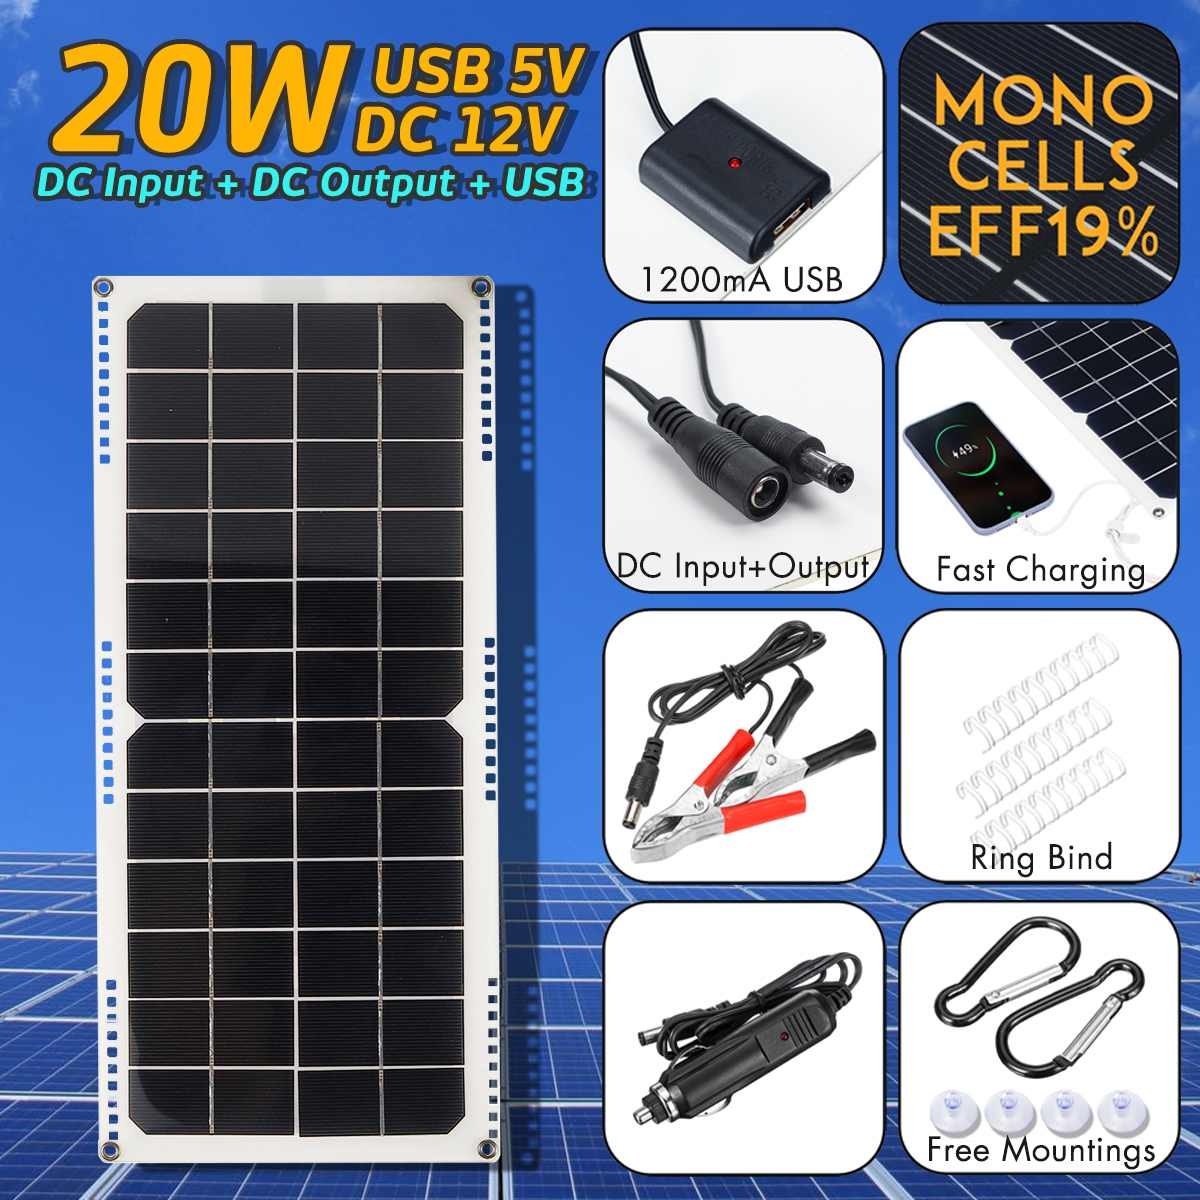 LEORY 14V 20W 1.5A Waterproof Solar Panel USB Monocrystalline Solar Panel with Car Charger for Outdoor Camping Emergency Light image